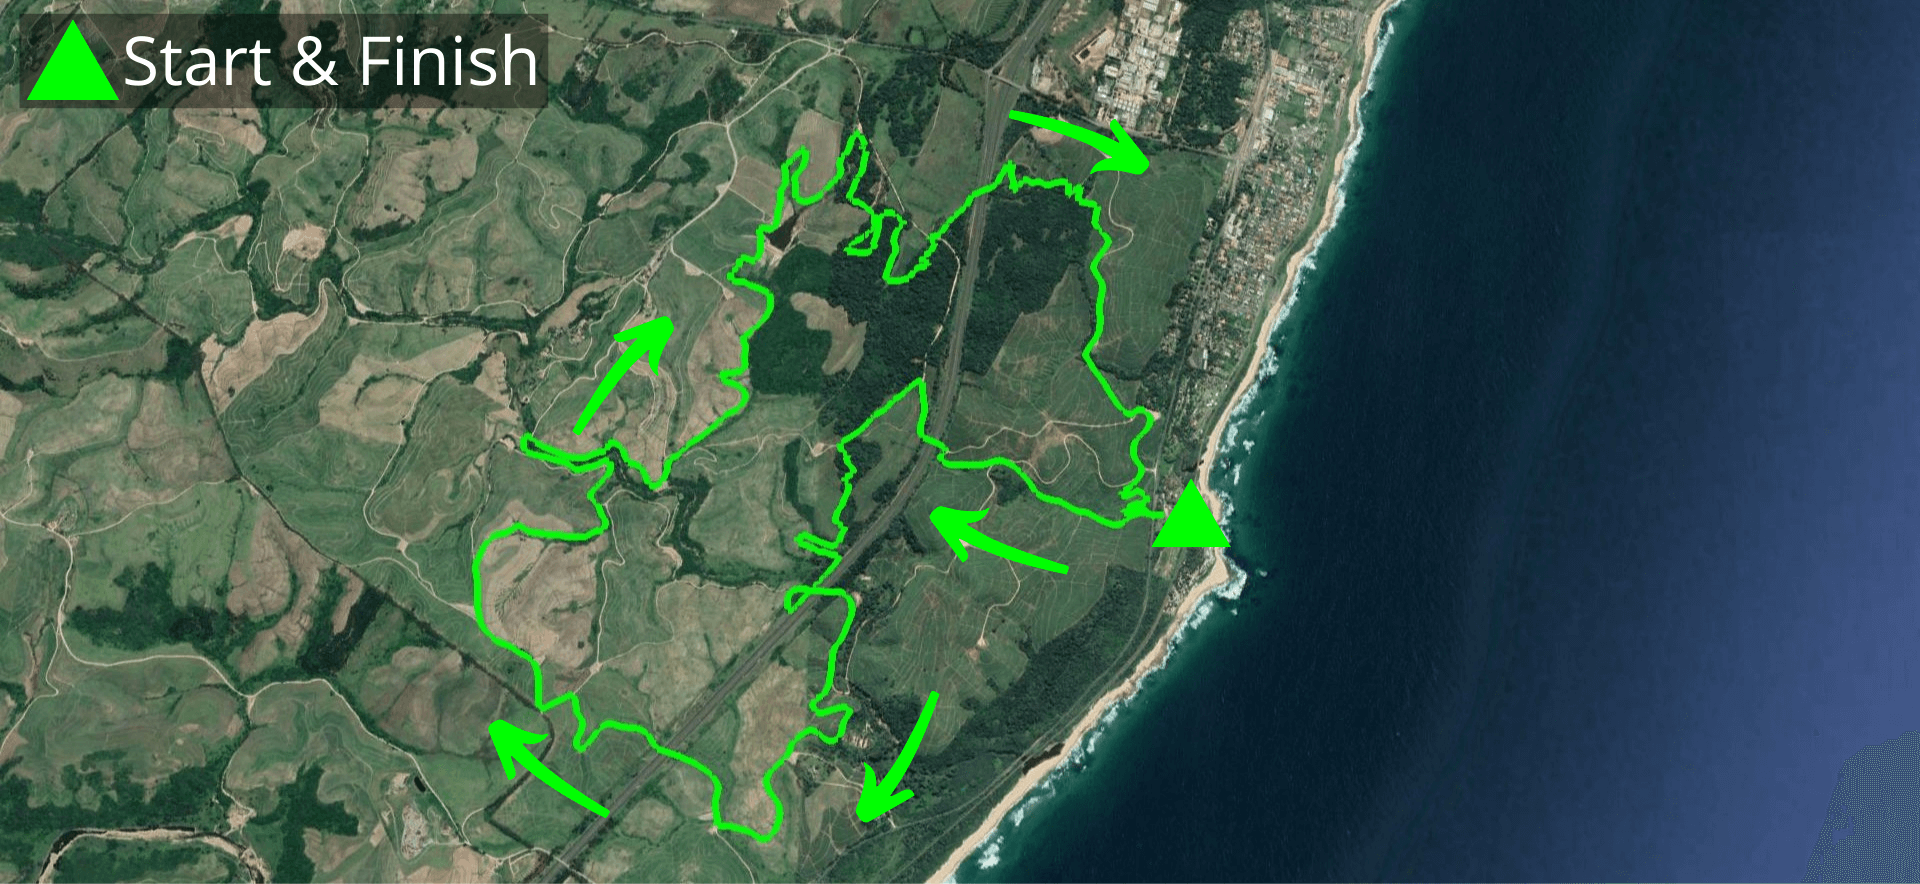 KZNTR Coastal Series Rocky Bay Oct20 - 20km Course Route (Directioned))